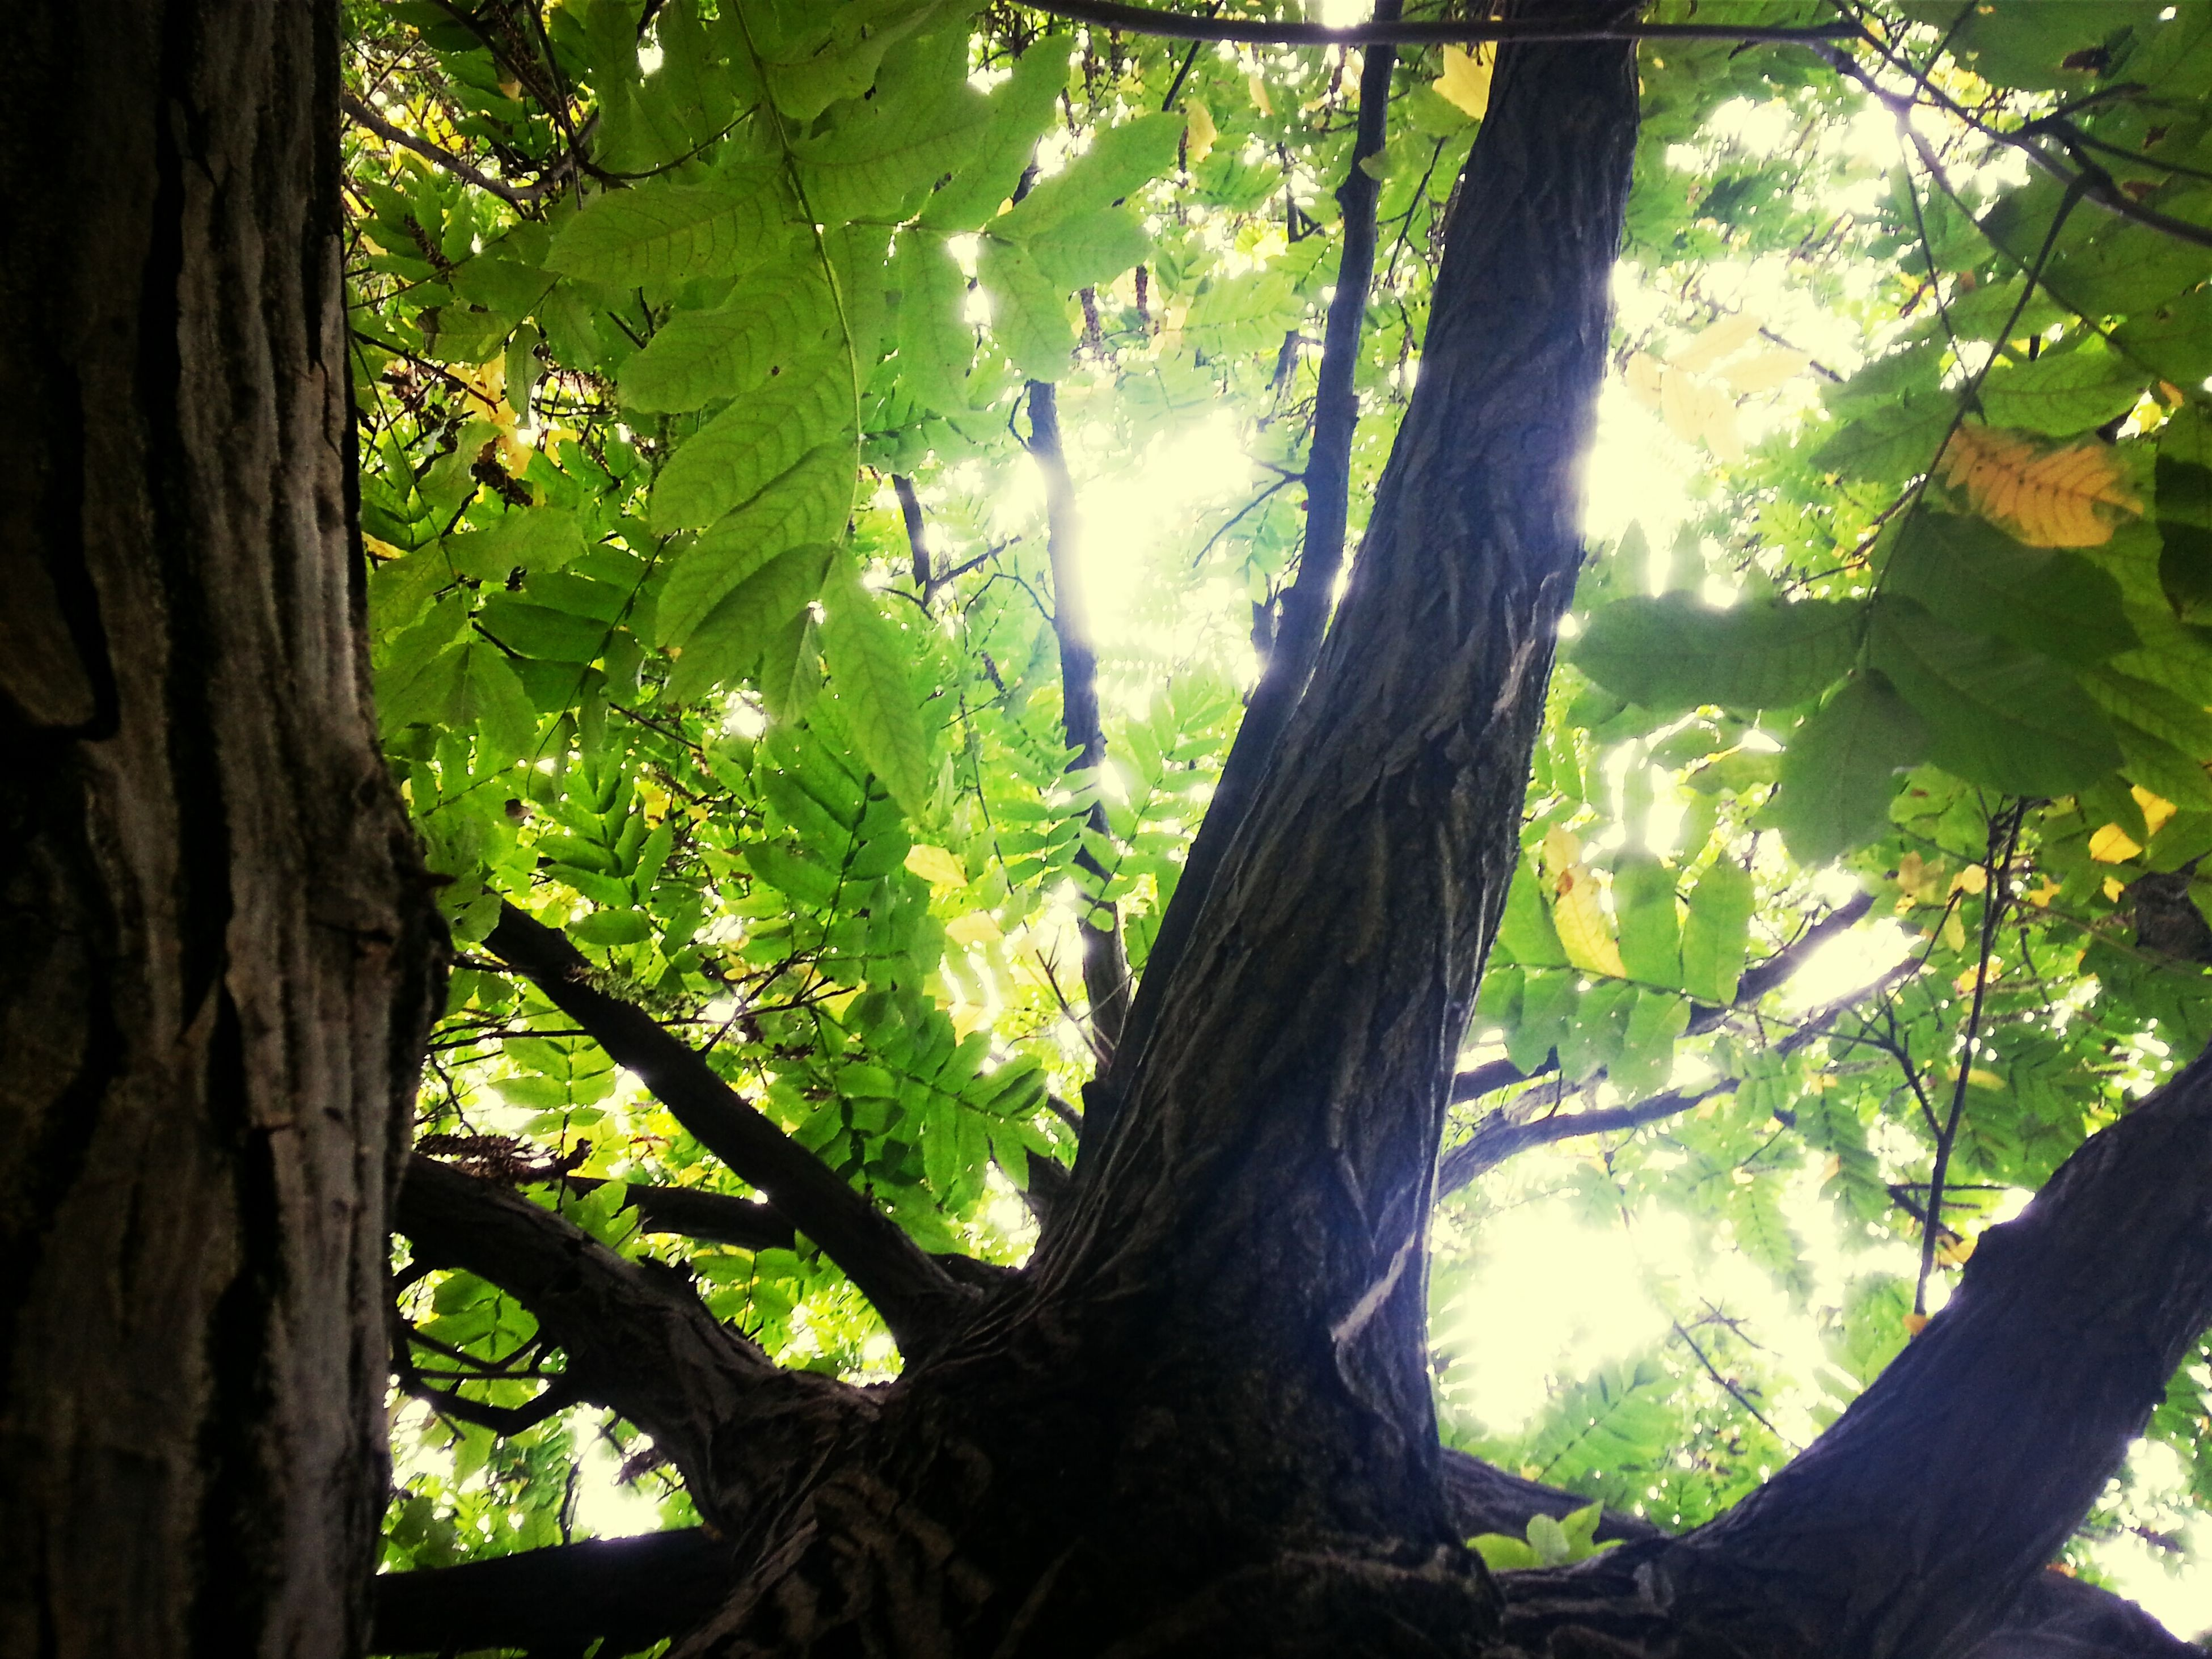 tree, tree trunk, branch, growth, leaf, nature, forest, low angle view, tranquility, green color, beauty in nature, sunlight, day, outdoors, no people, close-up, wood - material, green, focus on foreground, scenics